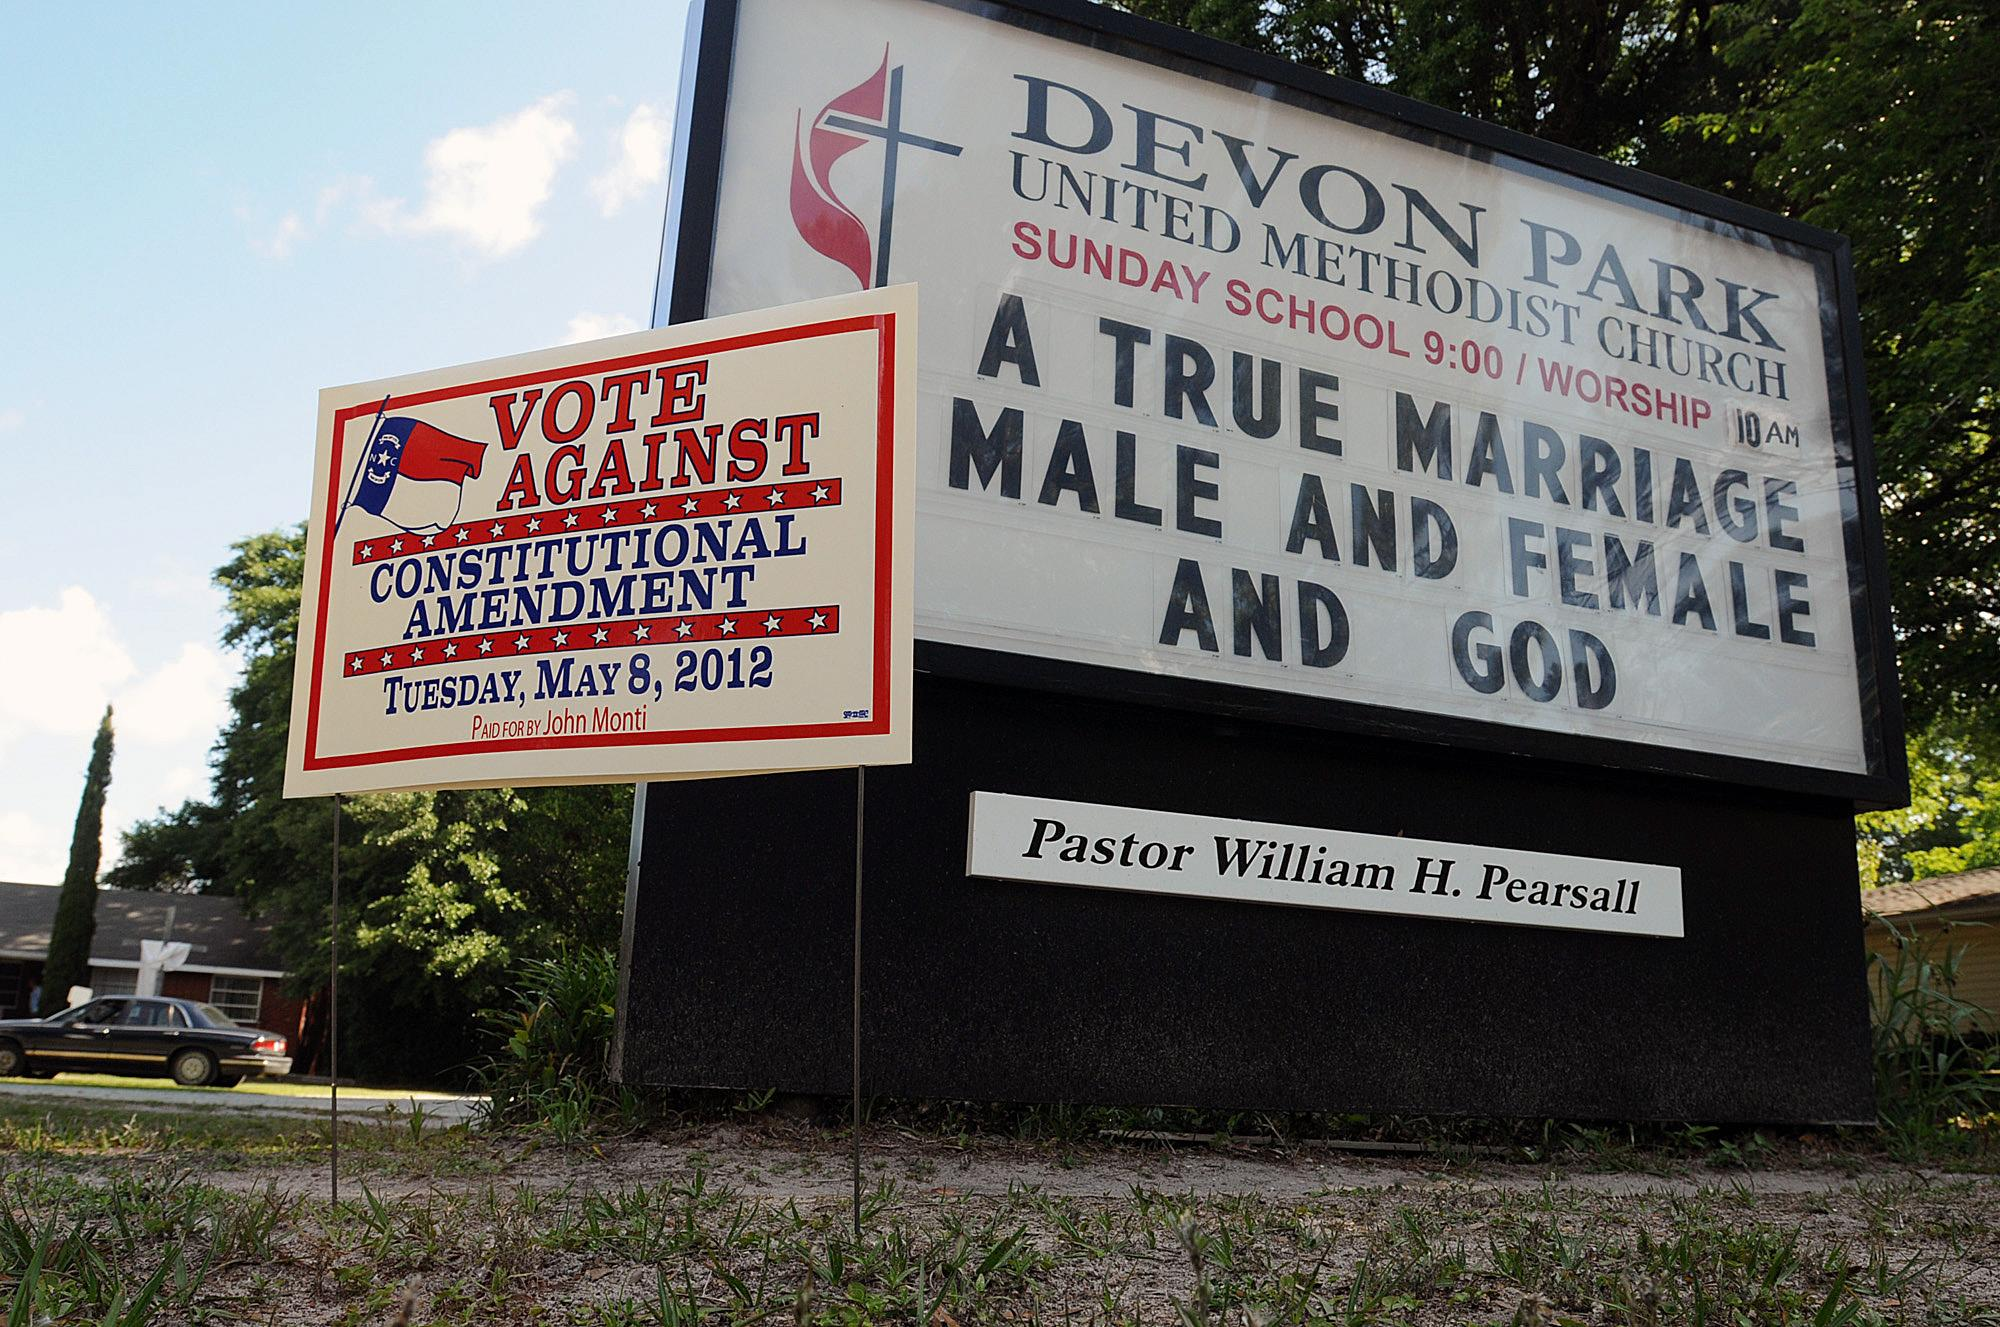 Signs display messages about gay marriage in front of the Devon Park United Methodist Church polling site on Tuesday, May 8, 2012, in Wilmington, N.C. North Carolina could be the next state to pass a constitutional amendment defining marriage as solely between a man and a woman. Voters are casting their ballots Tuesday. (AP Photo/The Star-News, Ken Blevins)